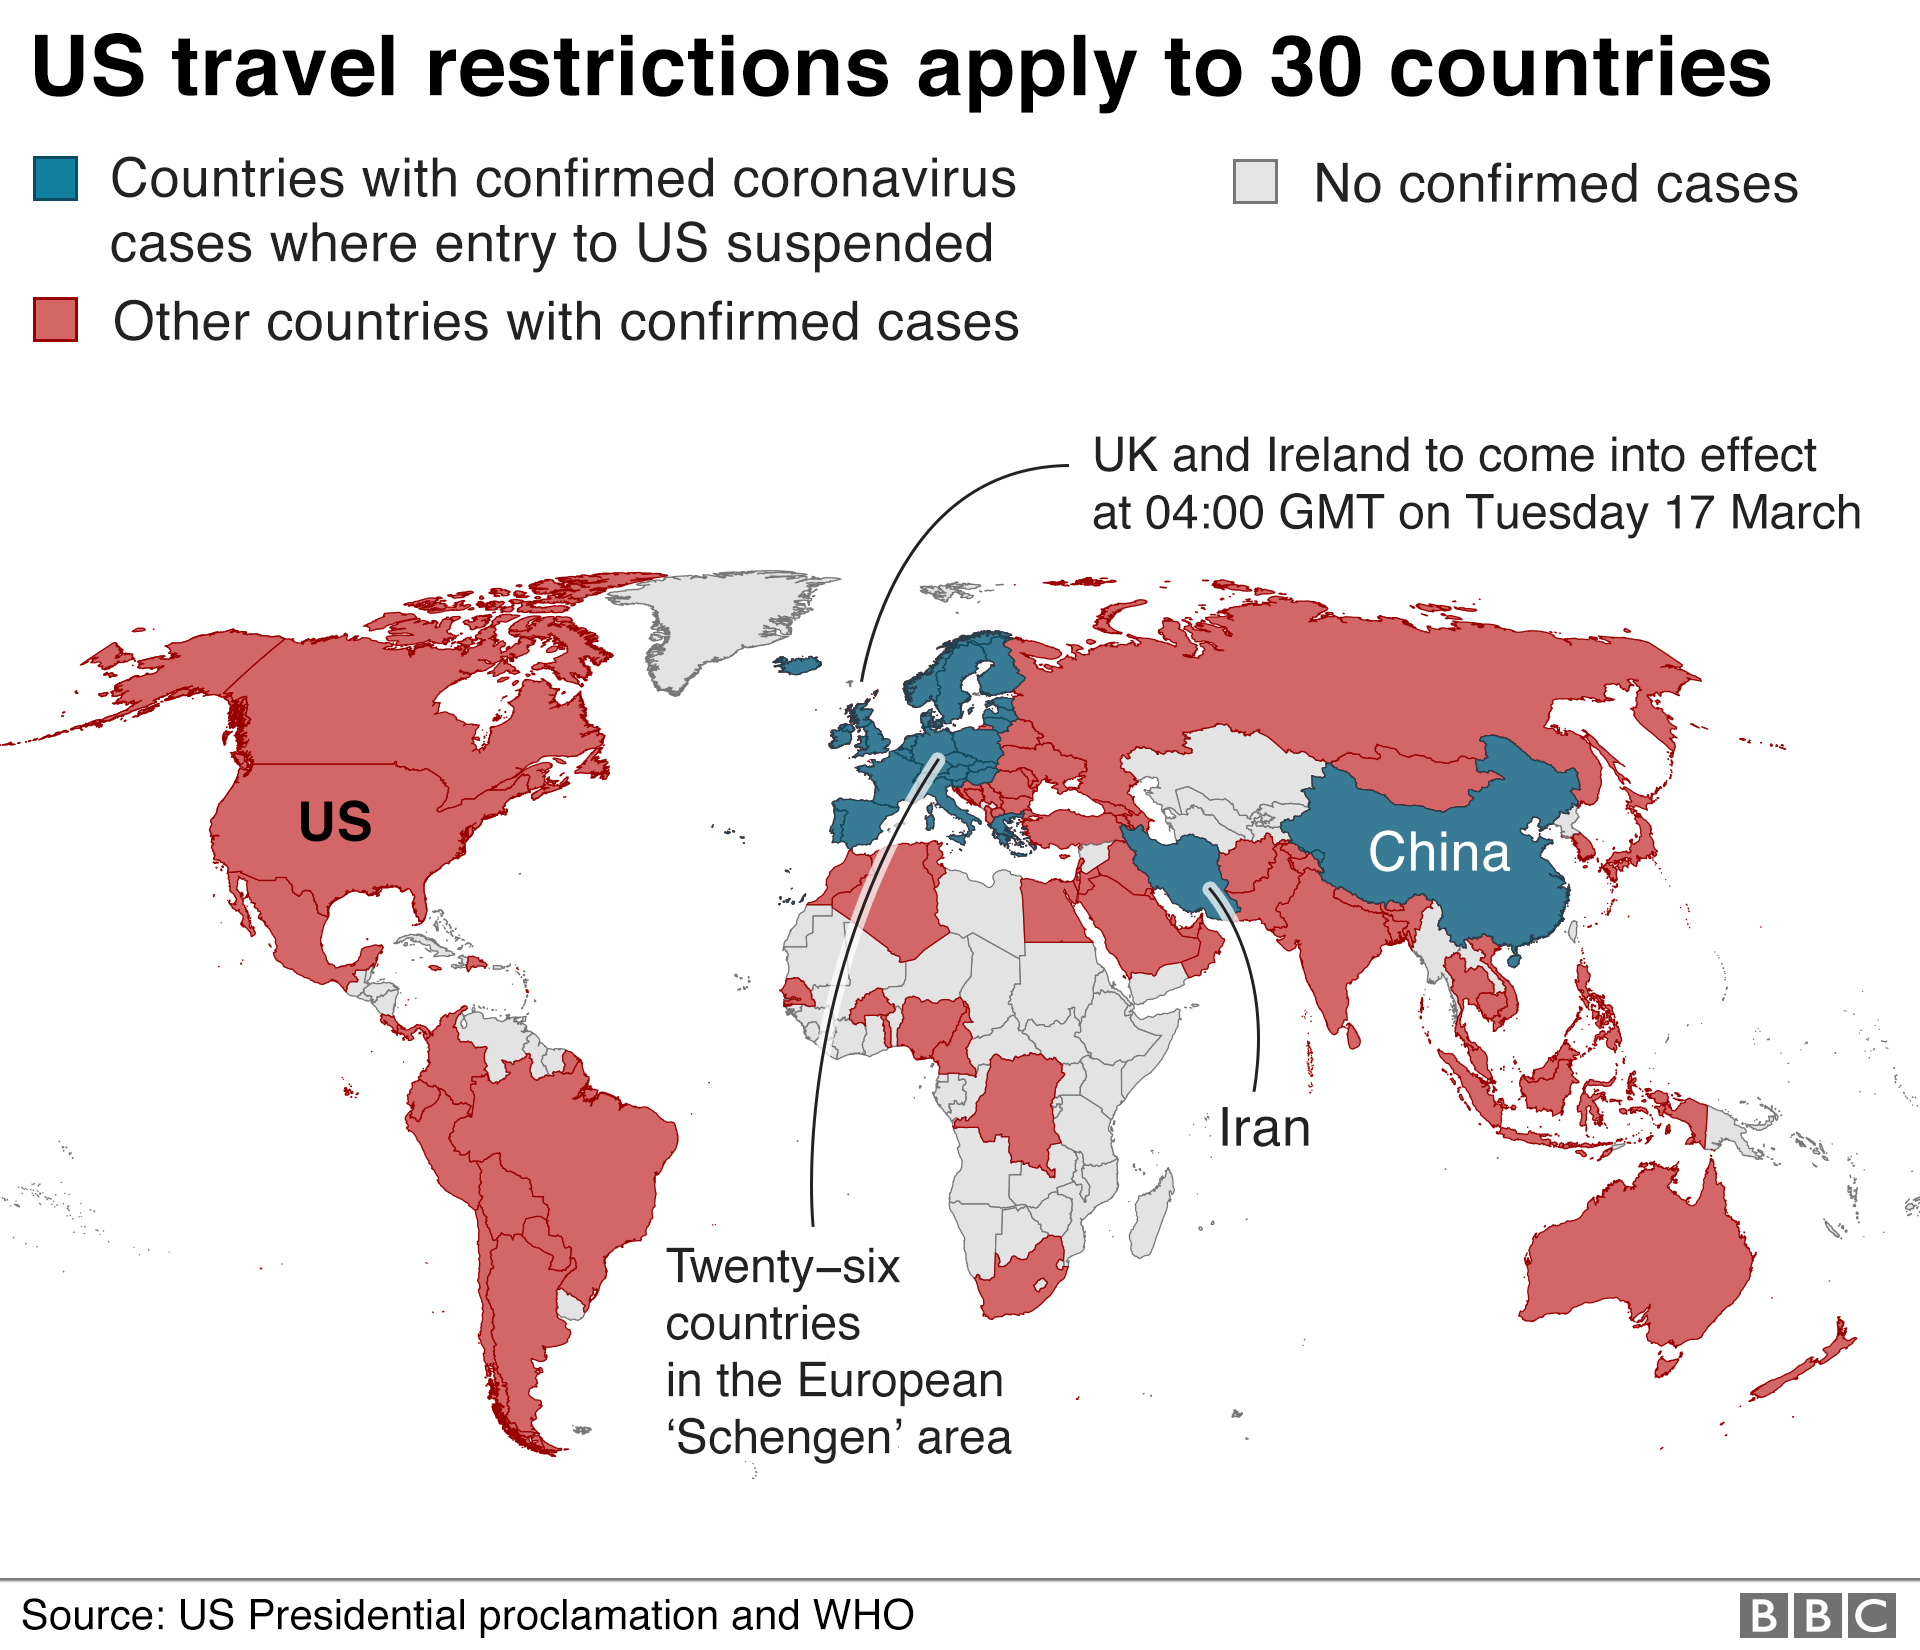 Map of US travel restrictions